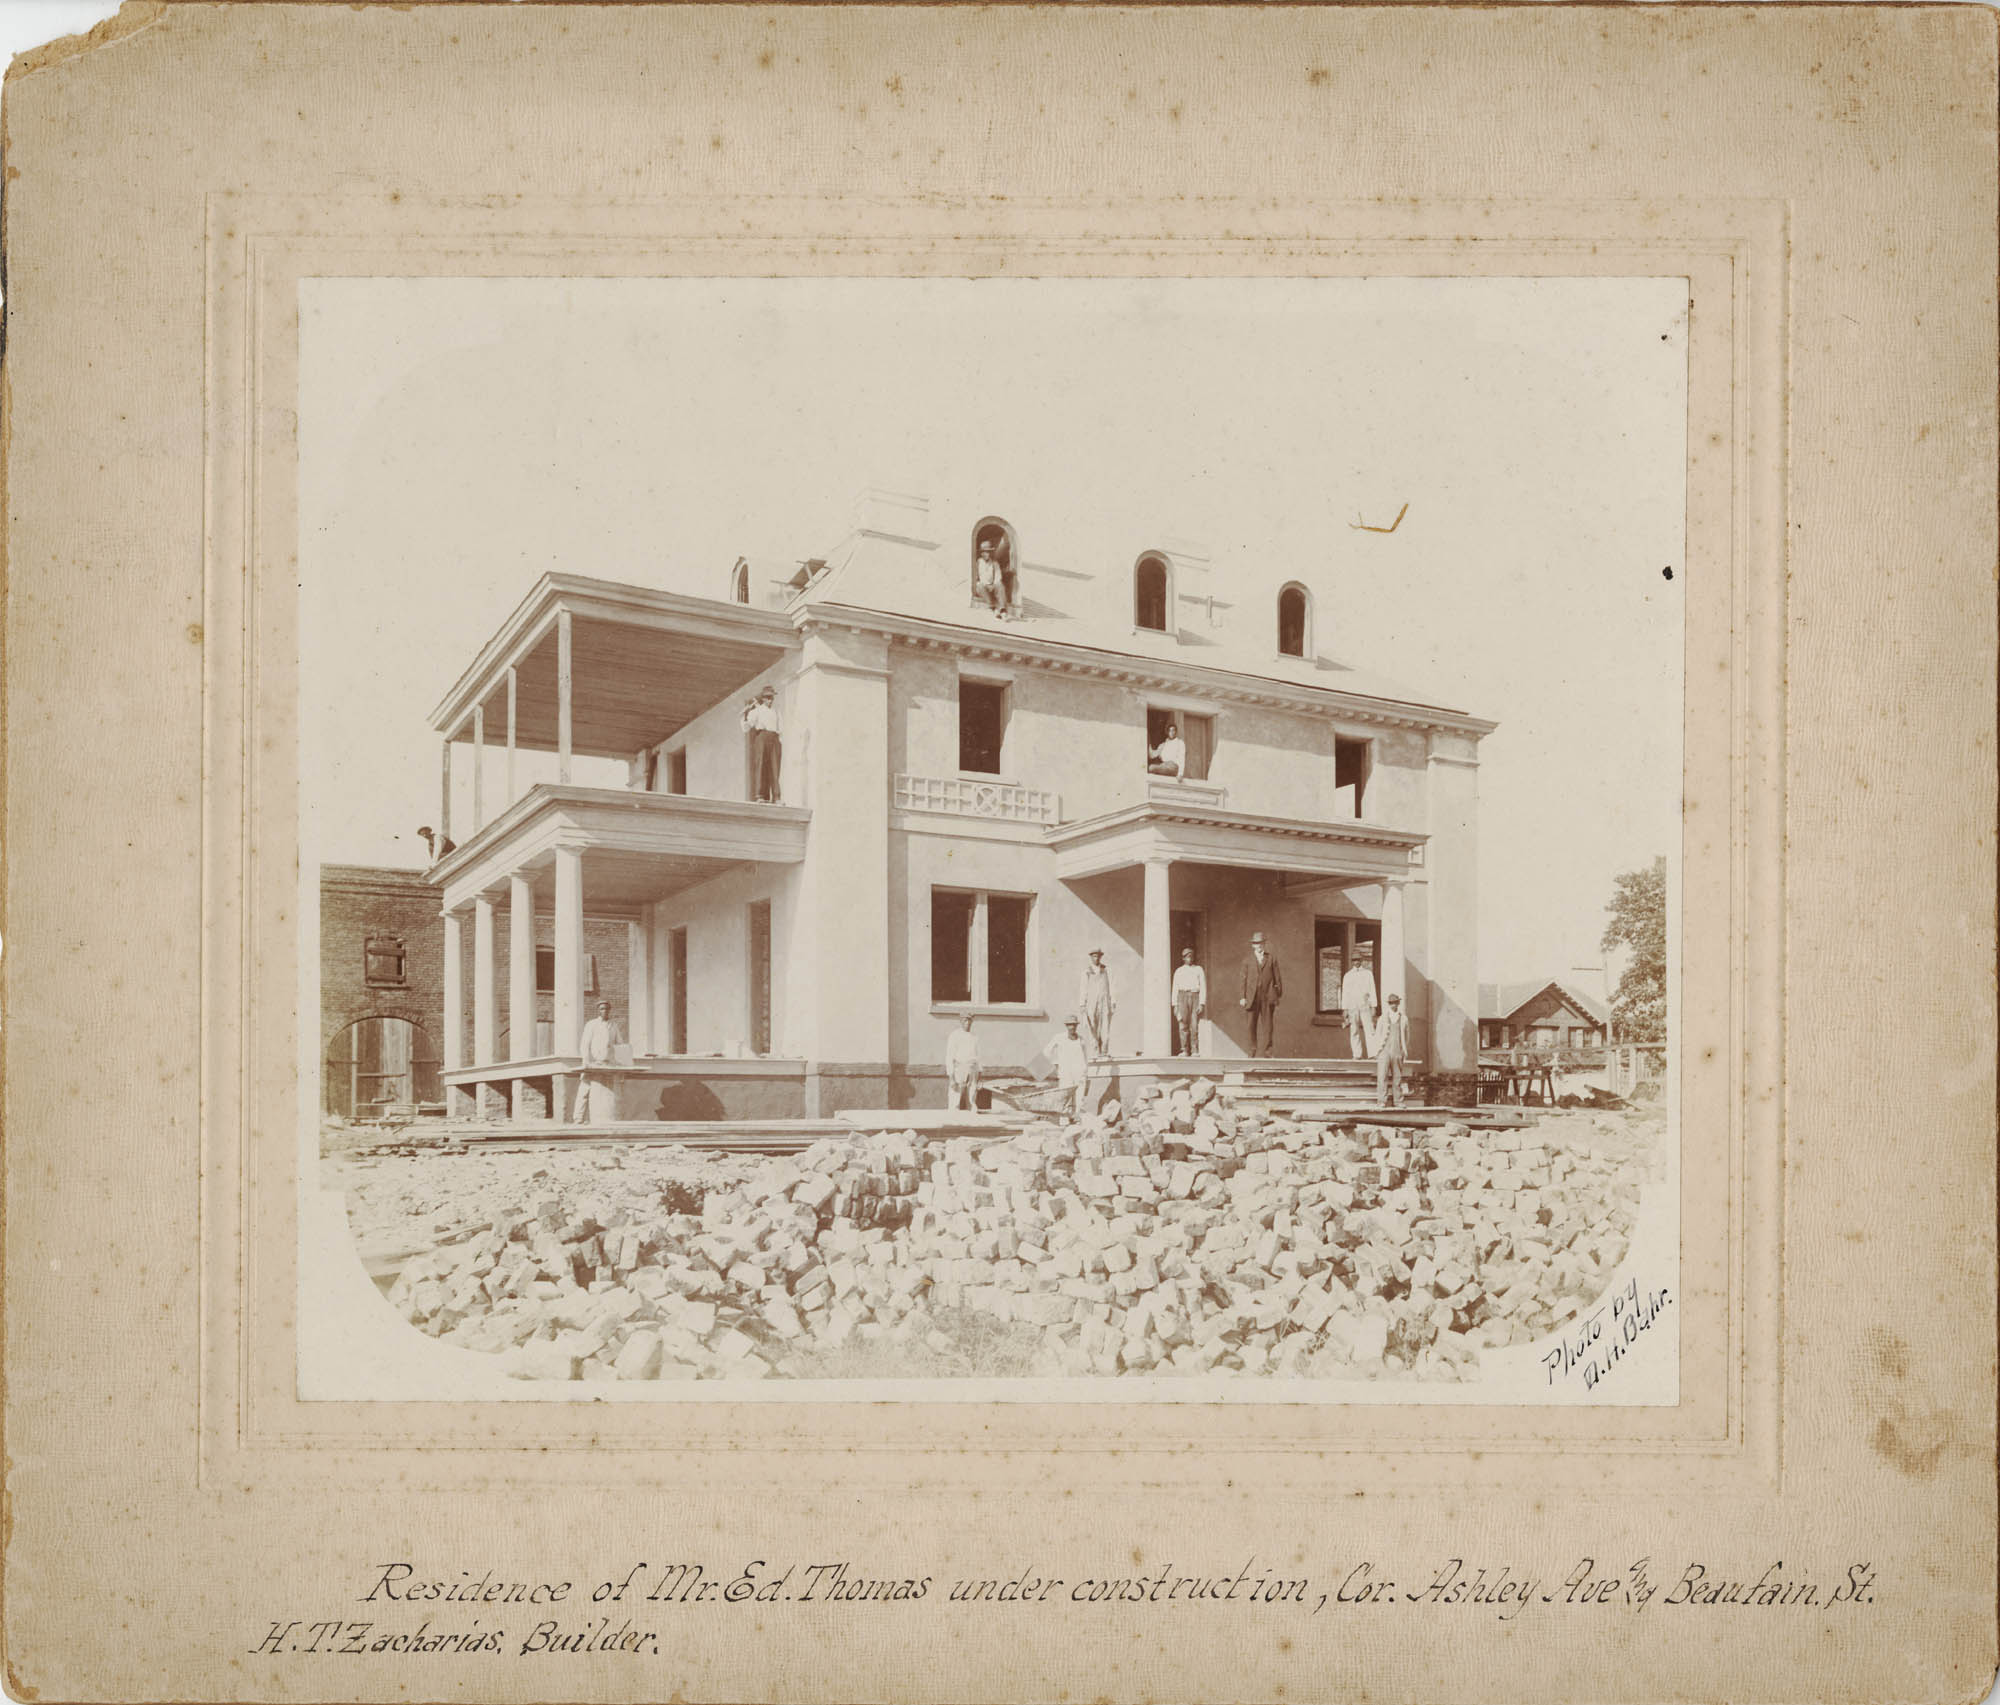 Residence of Mr. Ed Thomas Under Construction / photo by D.H. Bahr